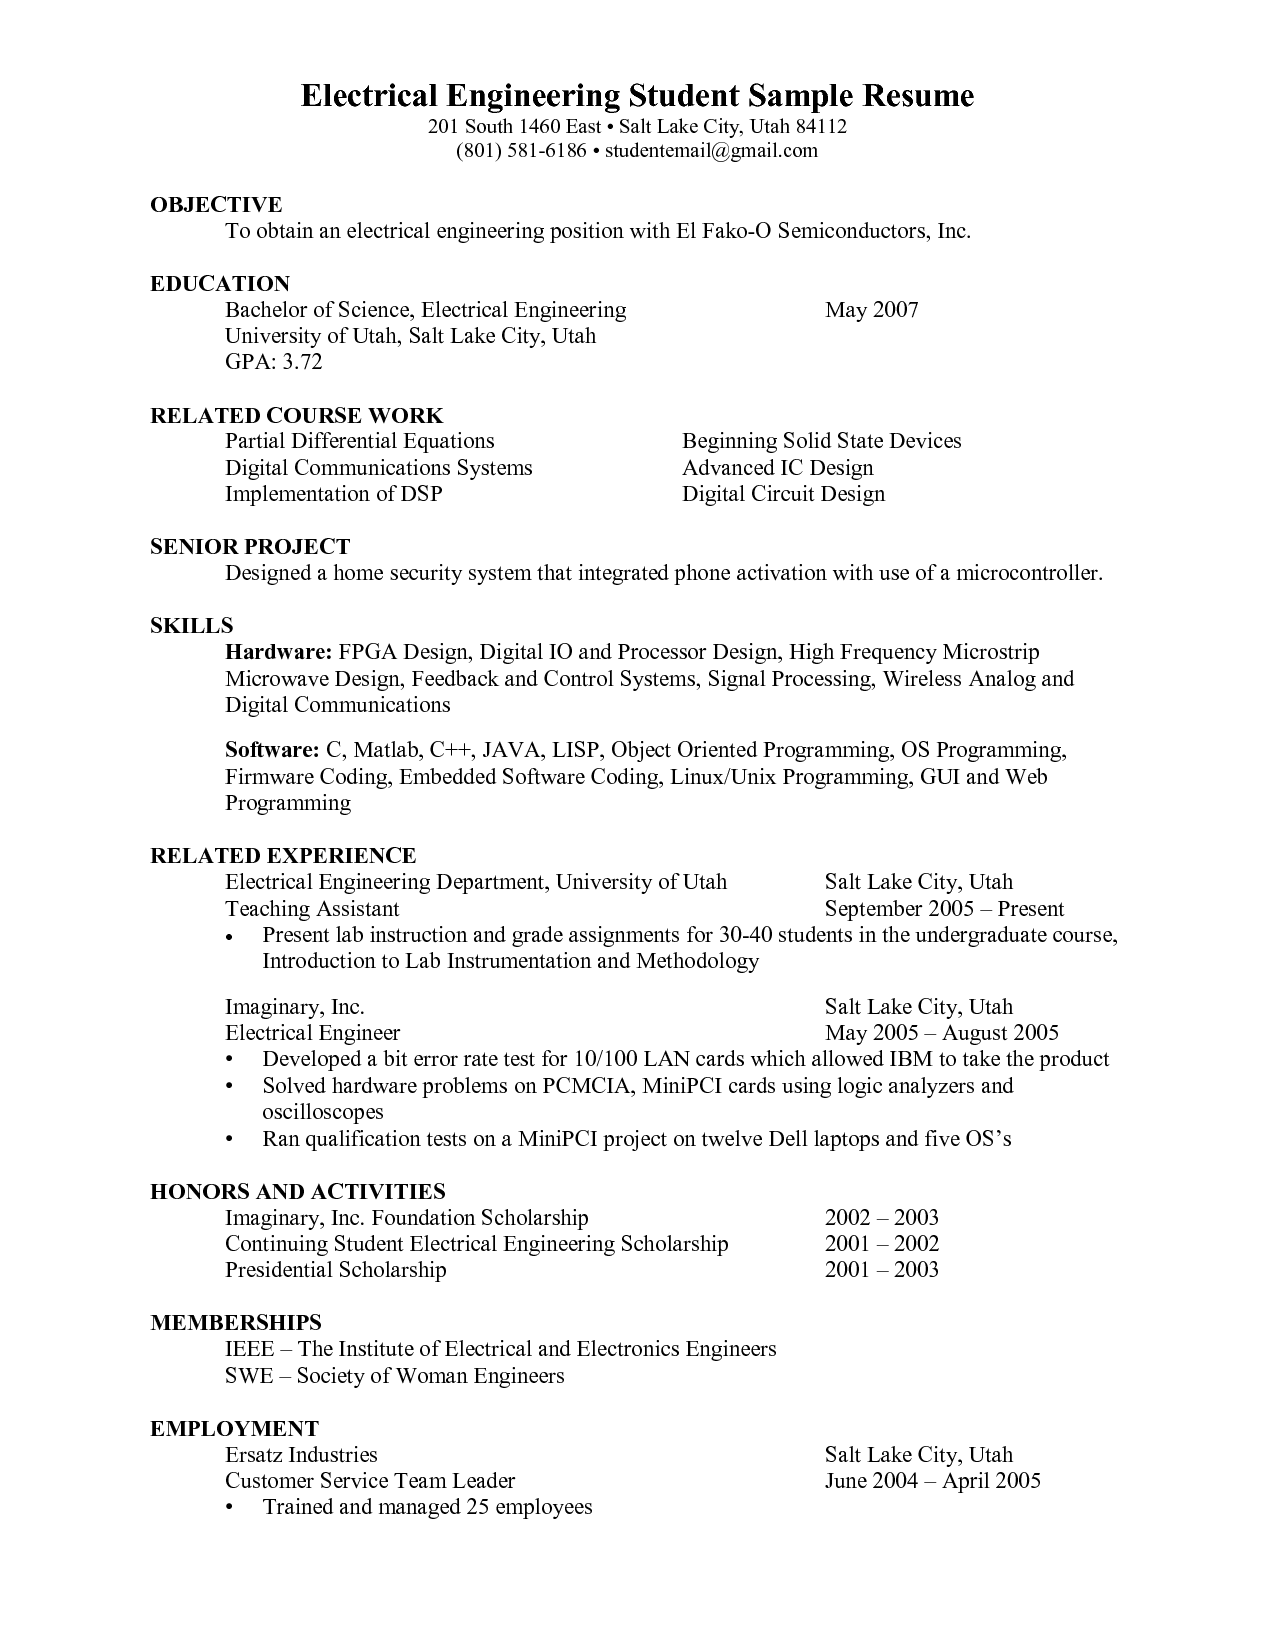 Resume Examples For Electronics Engineering Studentscareer Resume Template Career Resume Templat Internship Resume Engineering Resume Student Resume Template